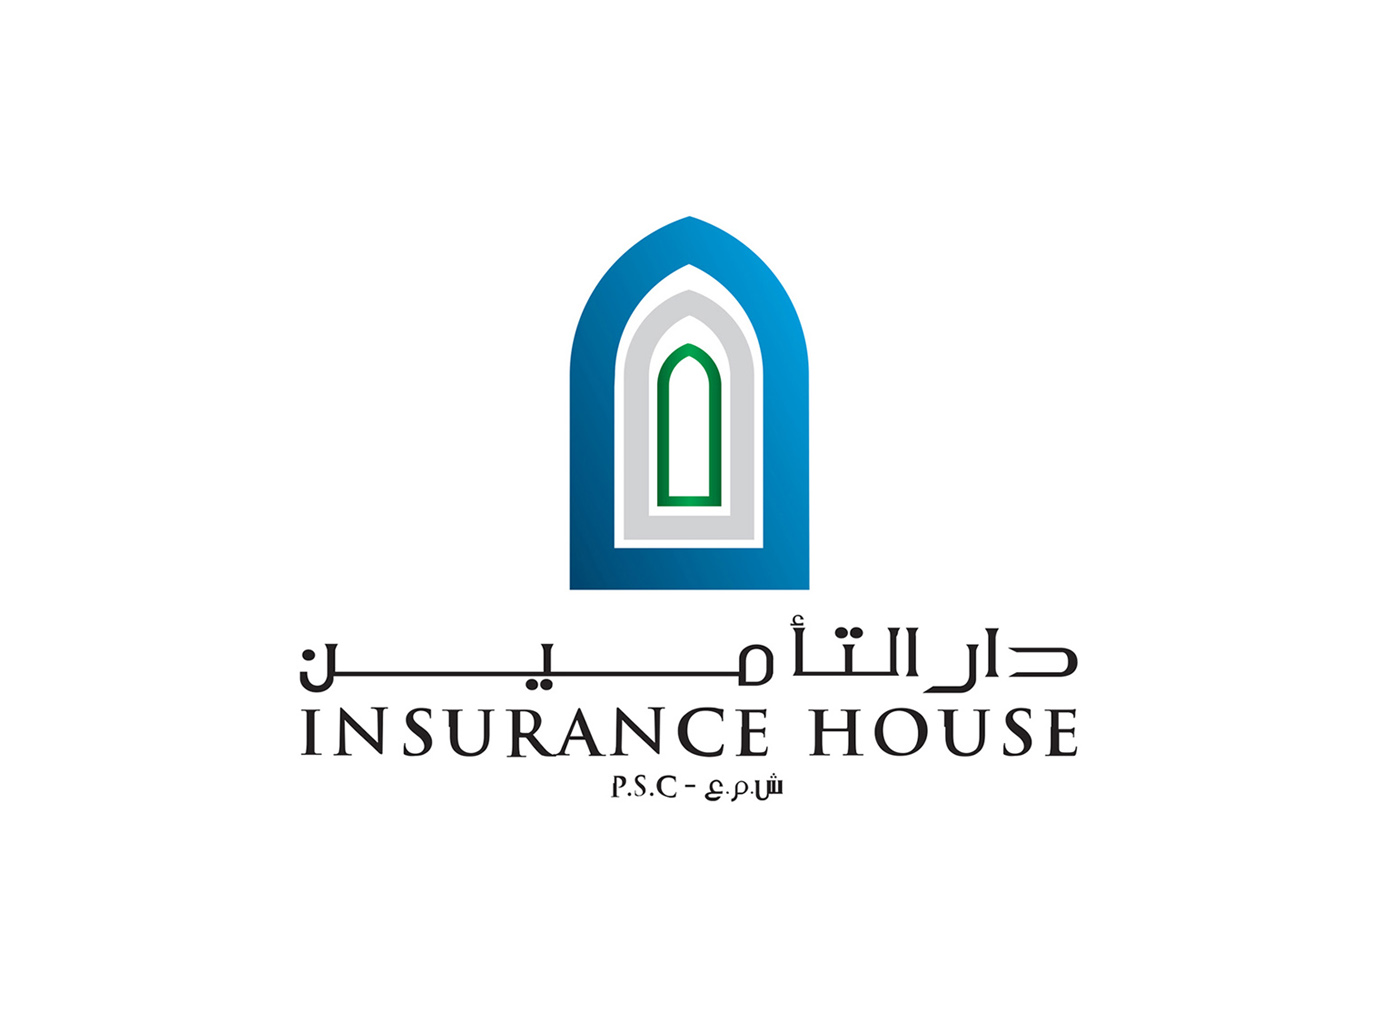 Insurance House Q1 2013 Results Nearly 10 Times Original Full Year Forecast